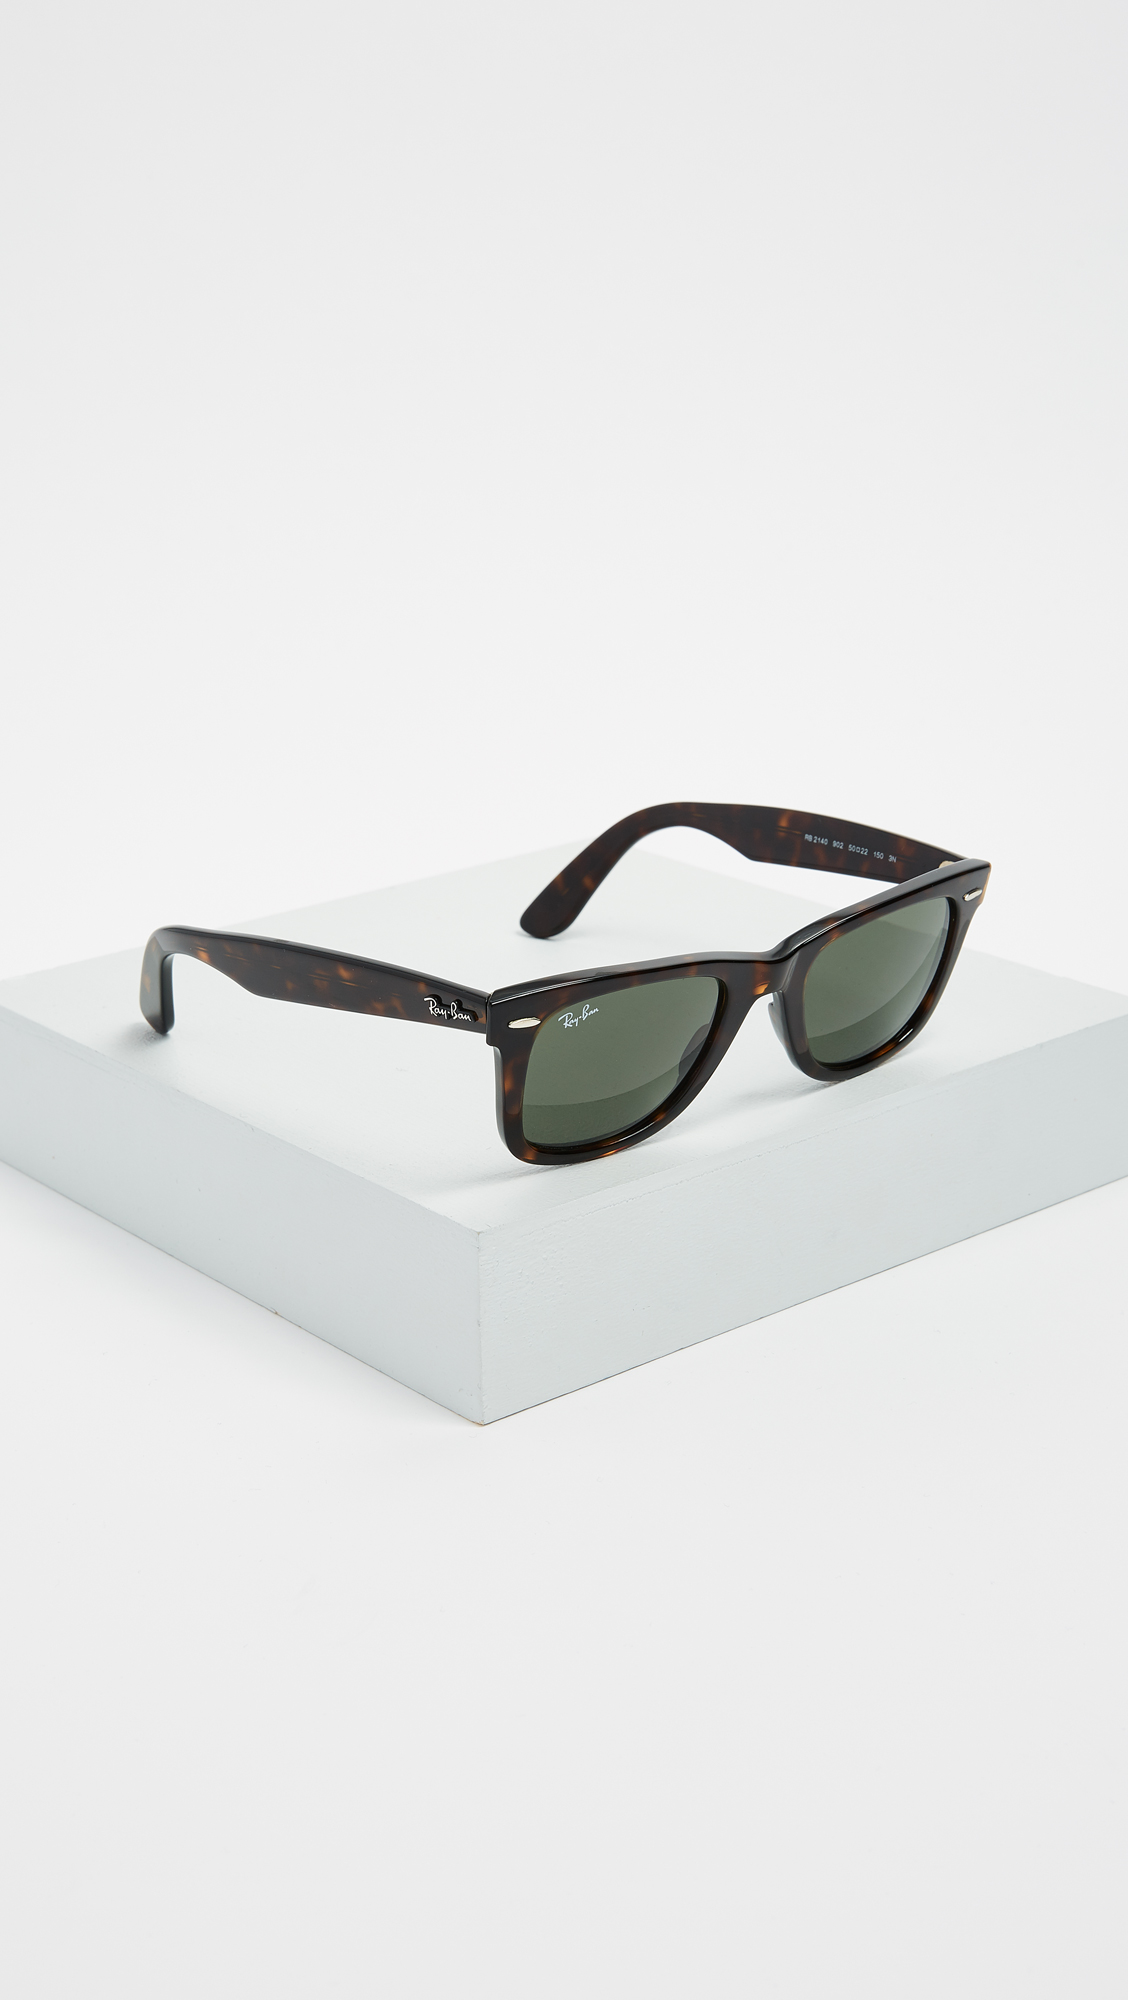 ee38c08323 Ray-Ban RB2140 Original Wayfarer Sunglasses